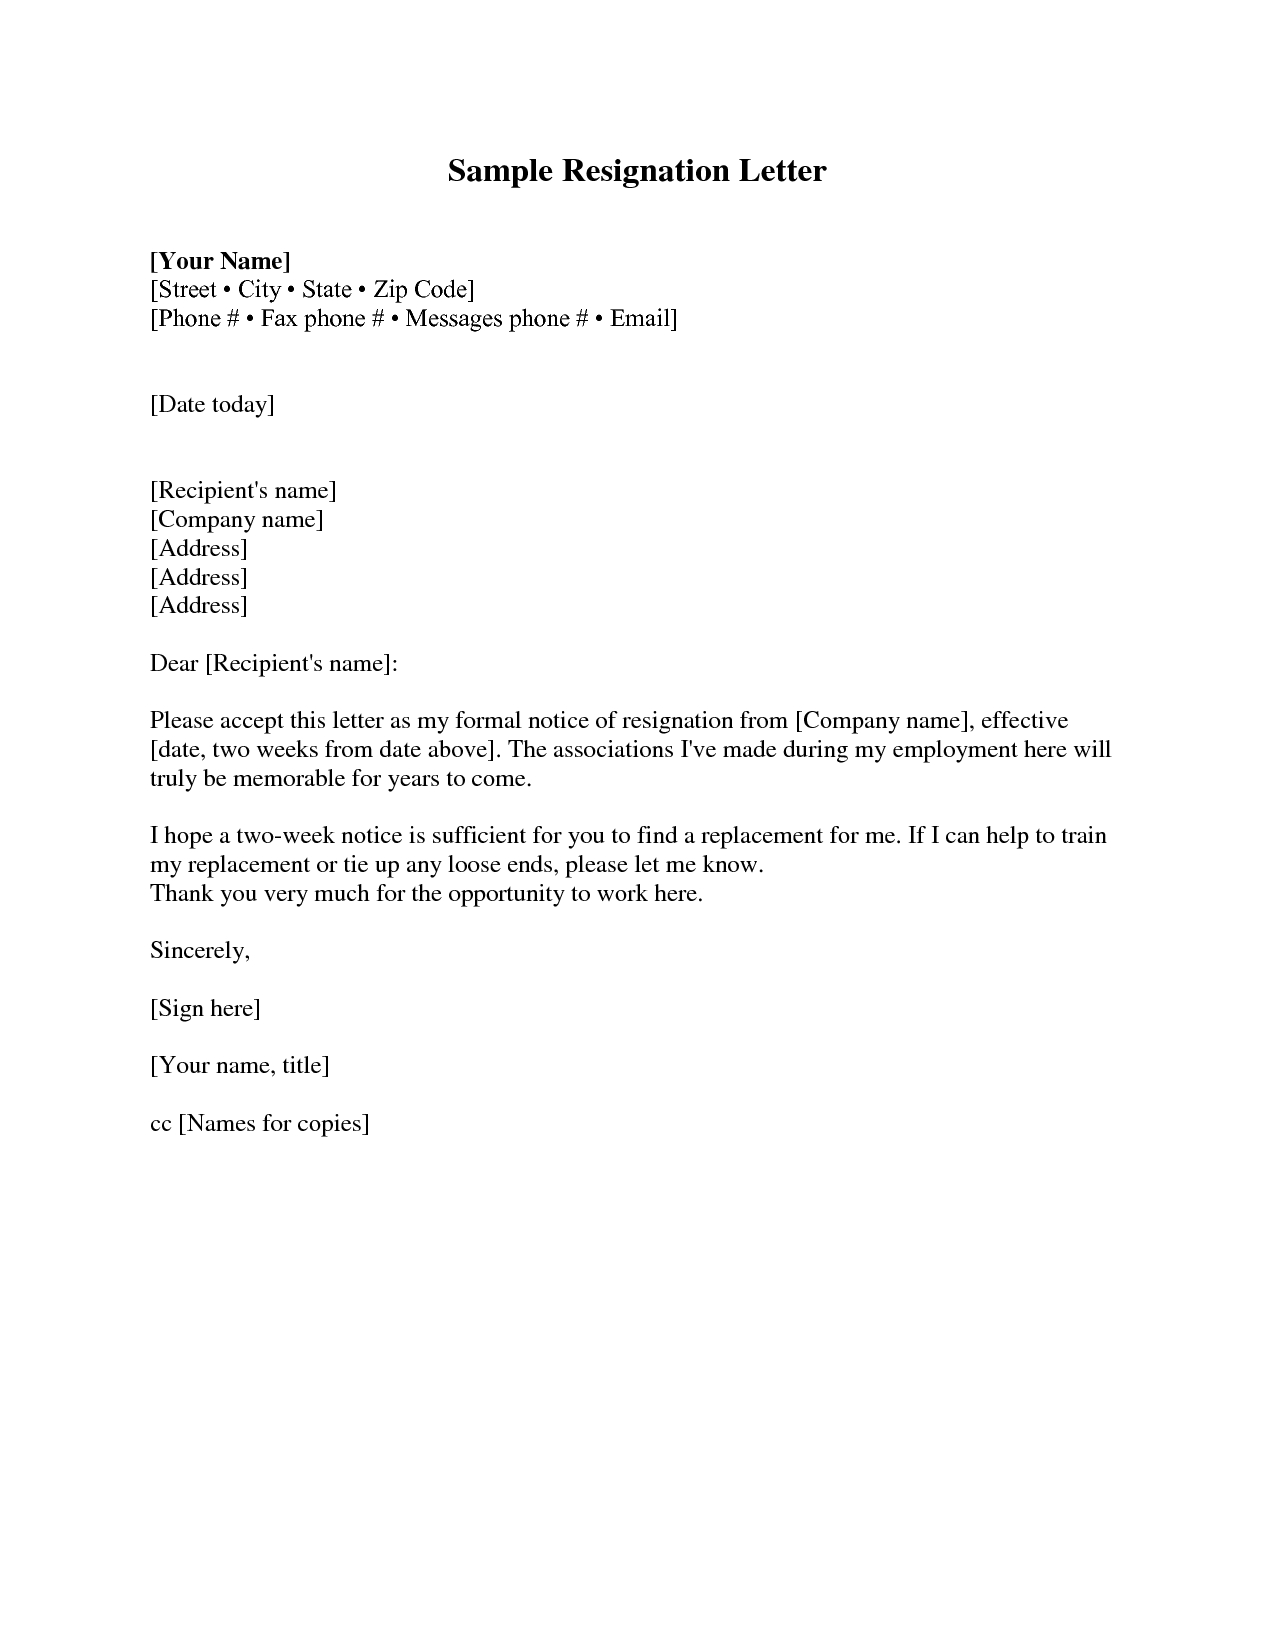 Sample Employee Termination Letter Template Examples Letter Templates